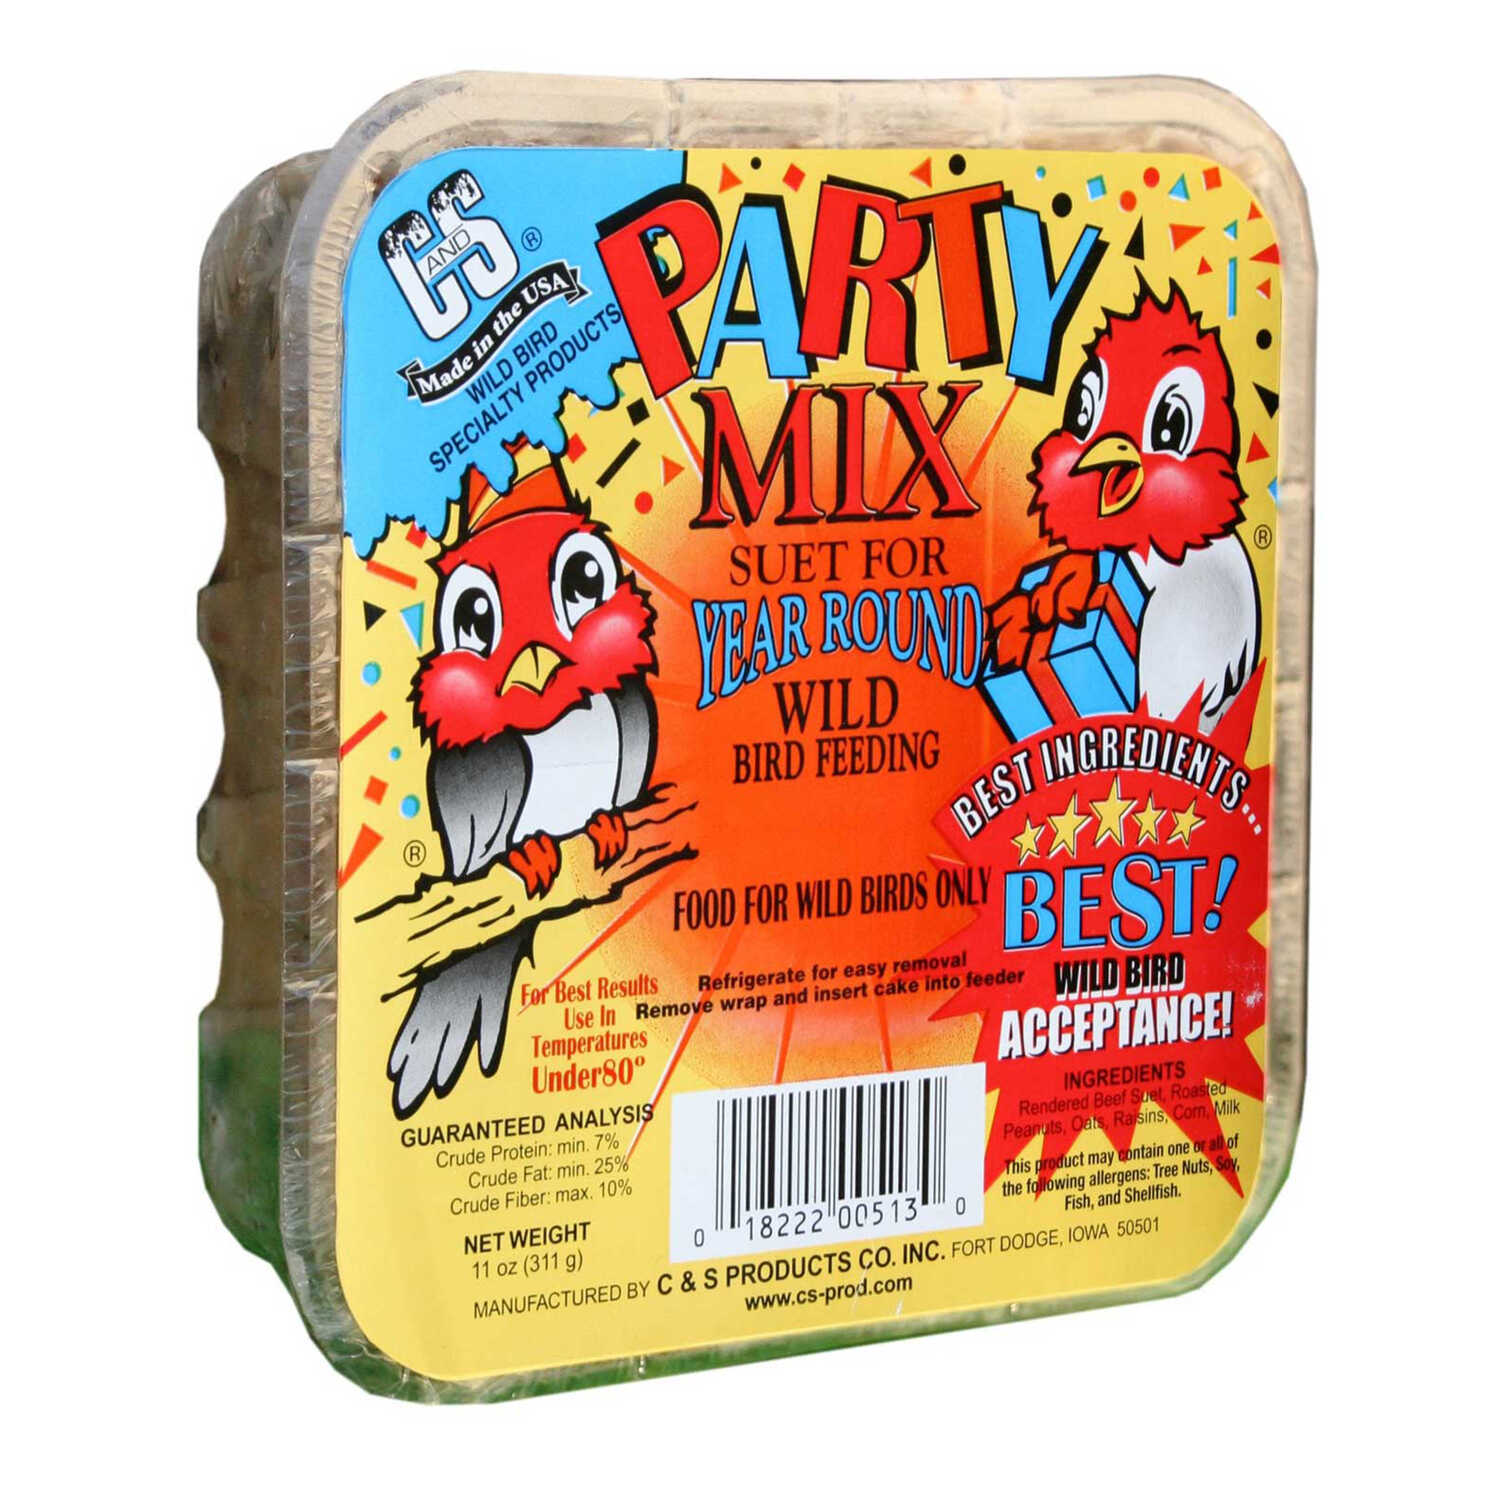 C&S Products  Party Mix  Assorted Species  Wild Bird Food  Beef Suet  11 oz.